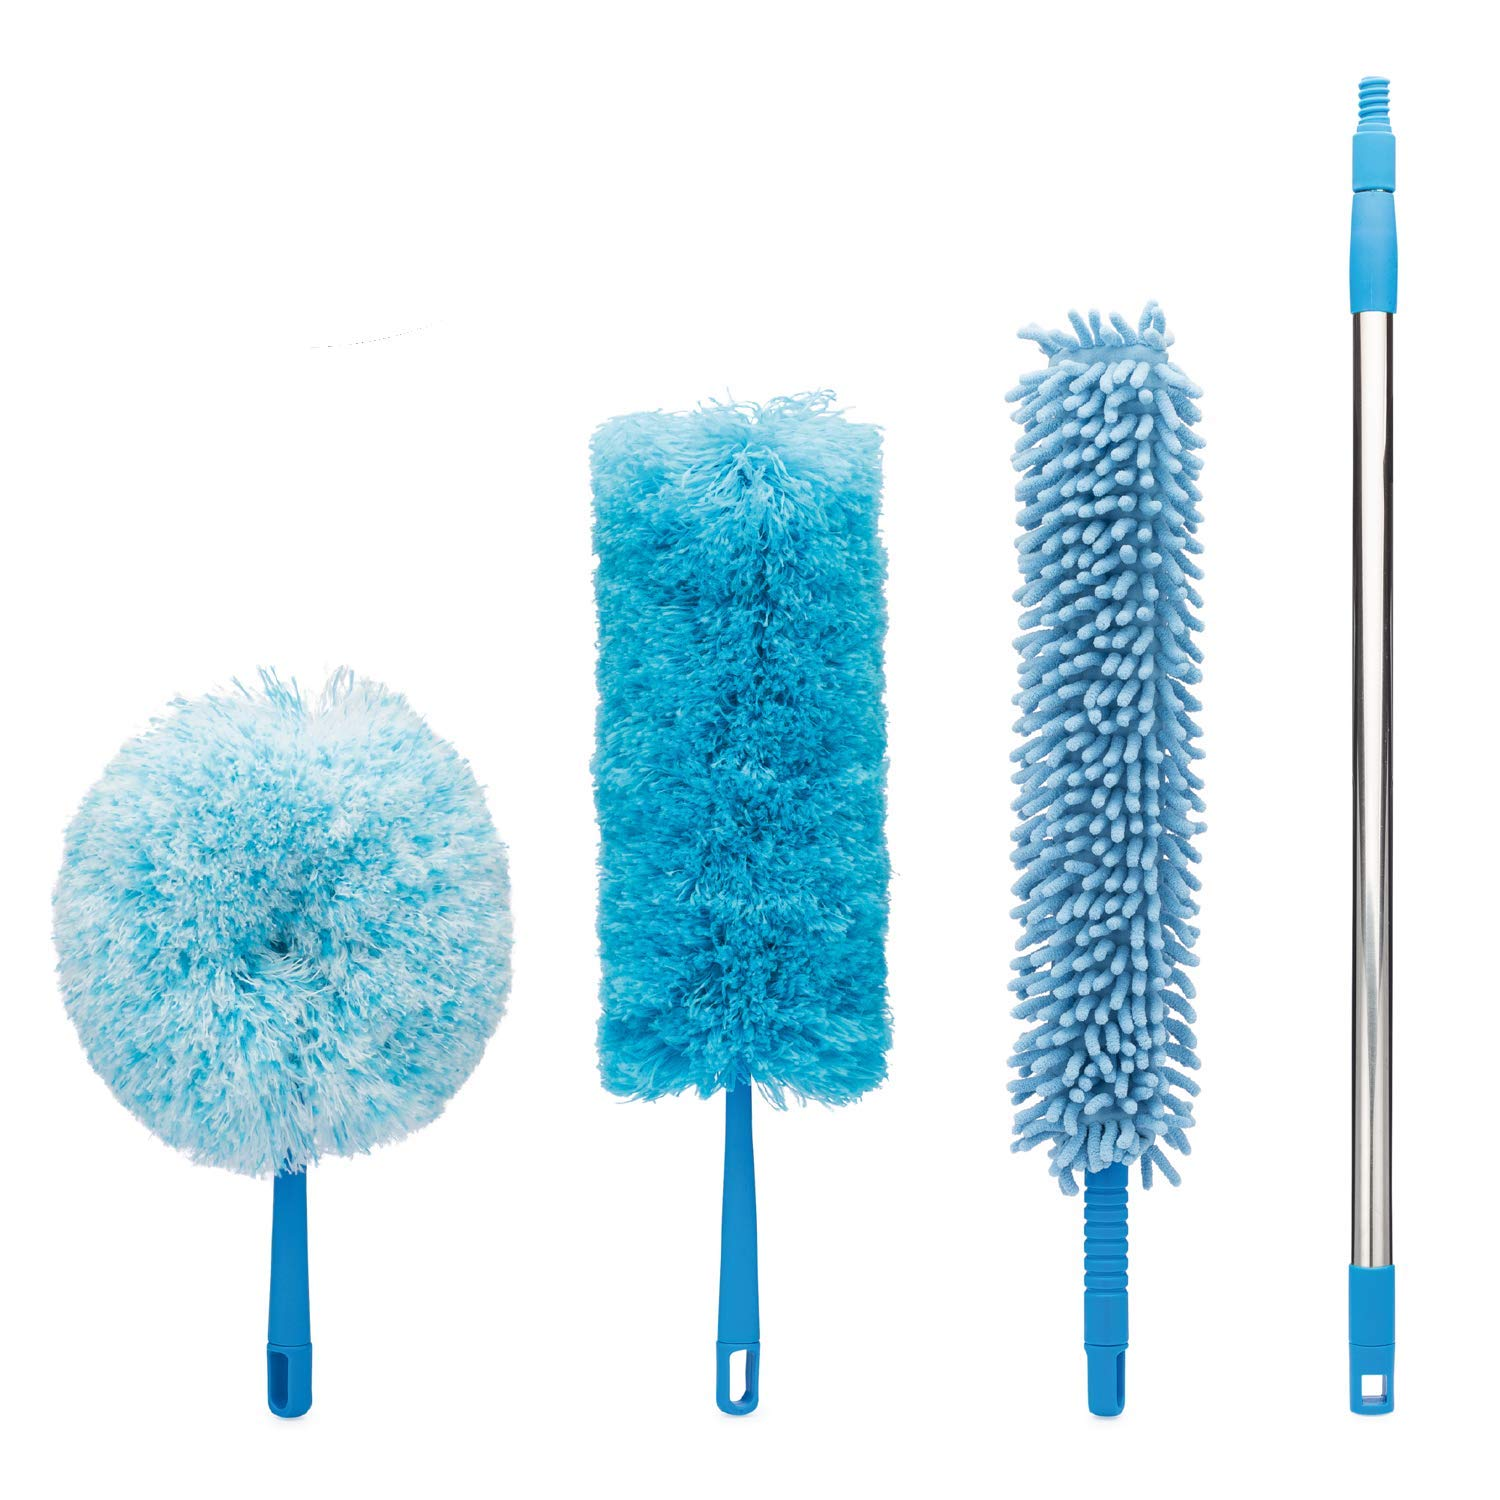 4pcs Best Microfiber Duster with Extension Pole | Large Fluffy Microfiber Cobweb Duster, Extra Large Microfiber Feather Duster, Flexible Microfiber Ceiling & Fan Duster | 4-Foot Telescopic Pole by SKA HomeStore